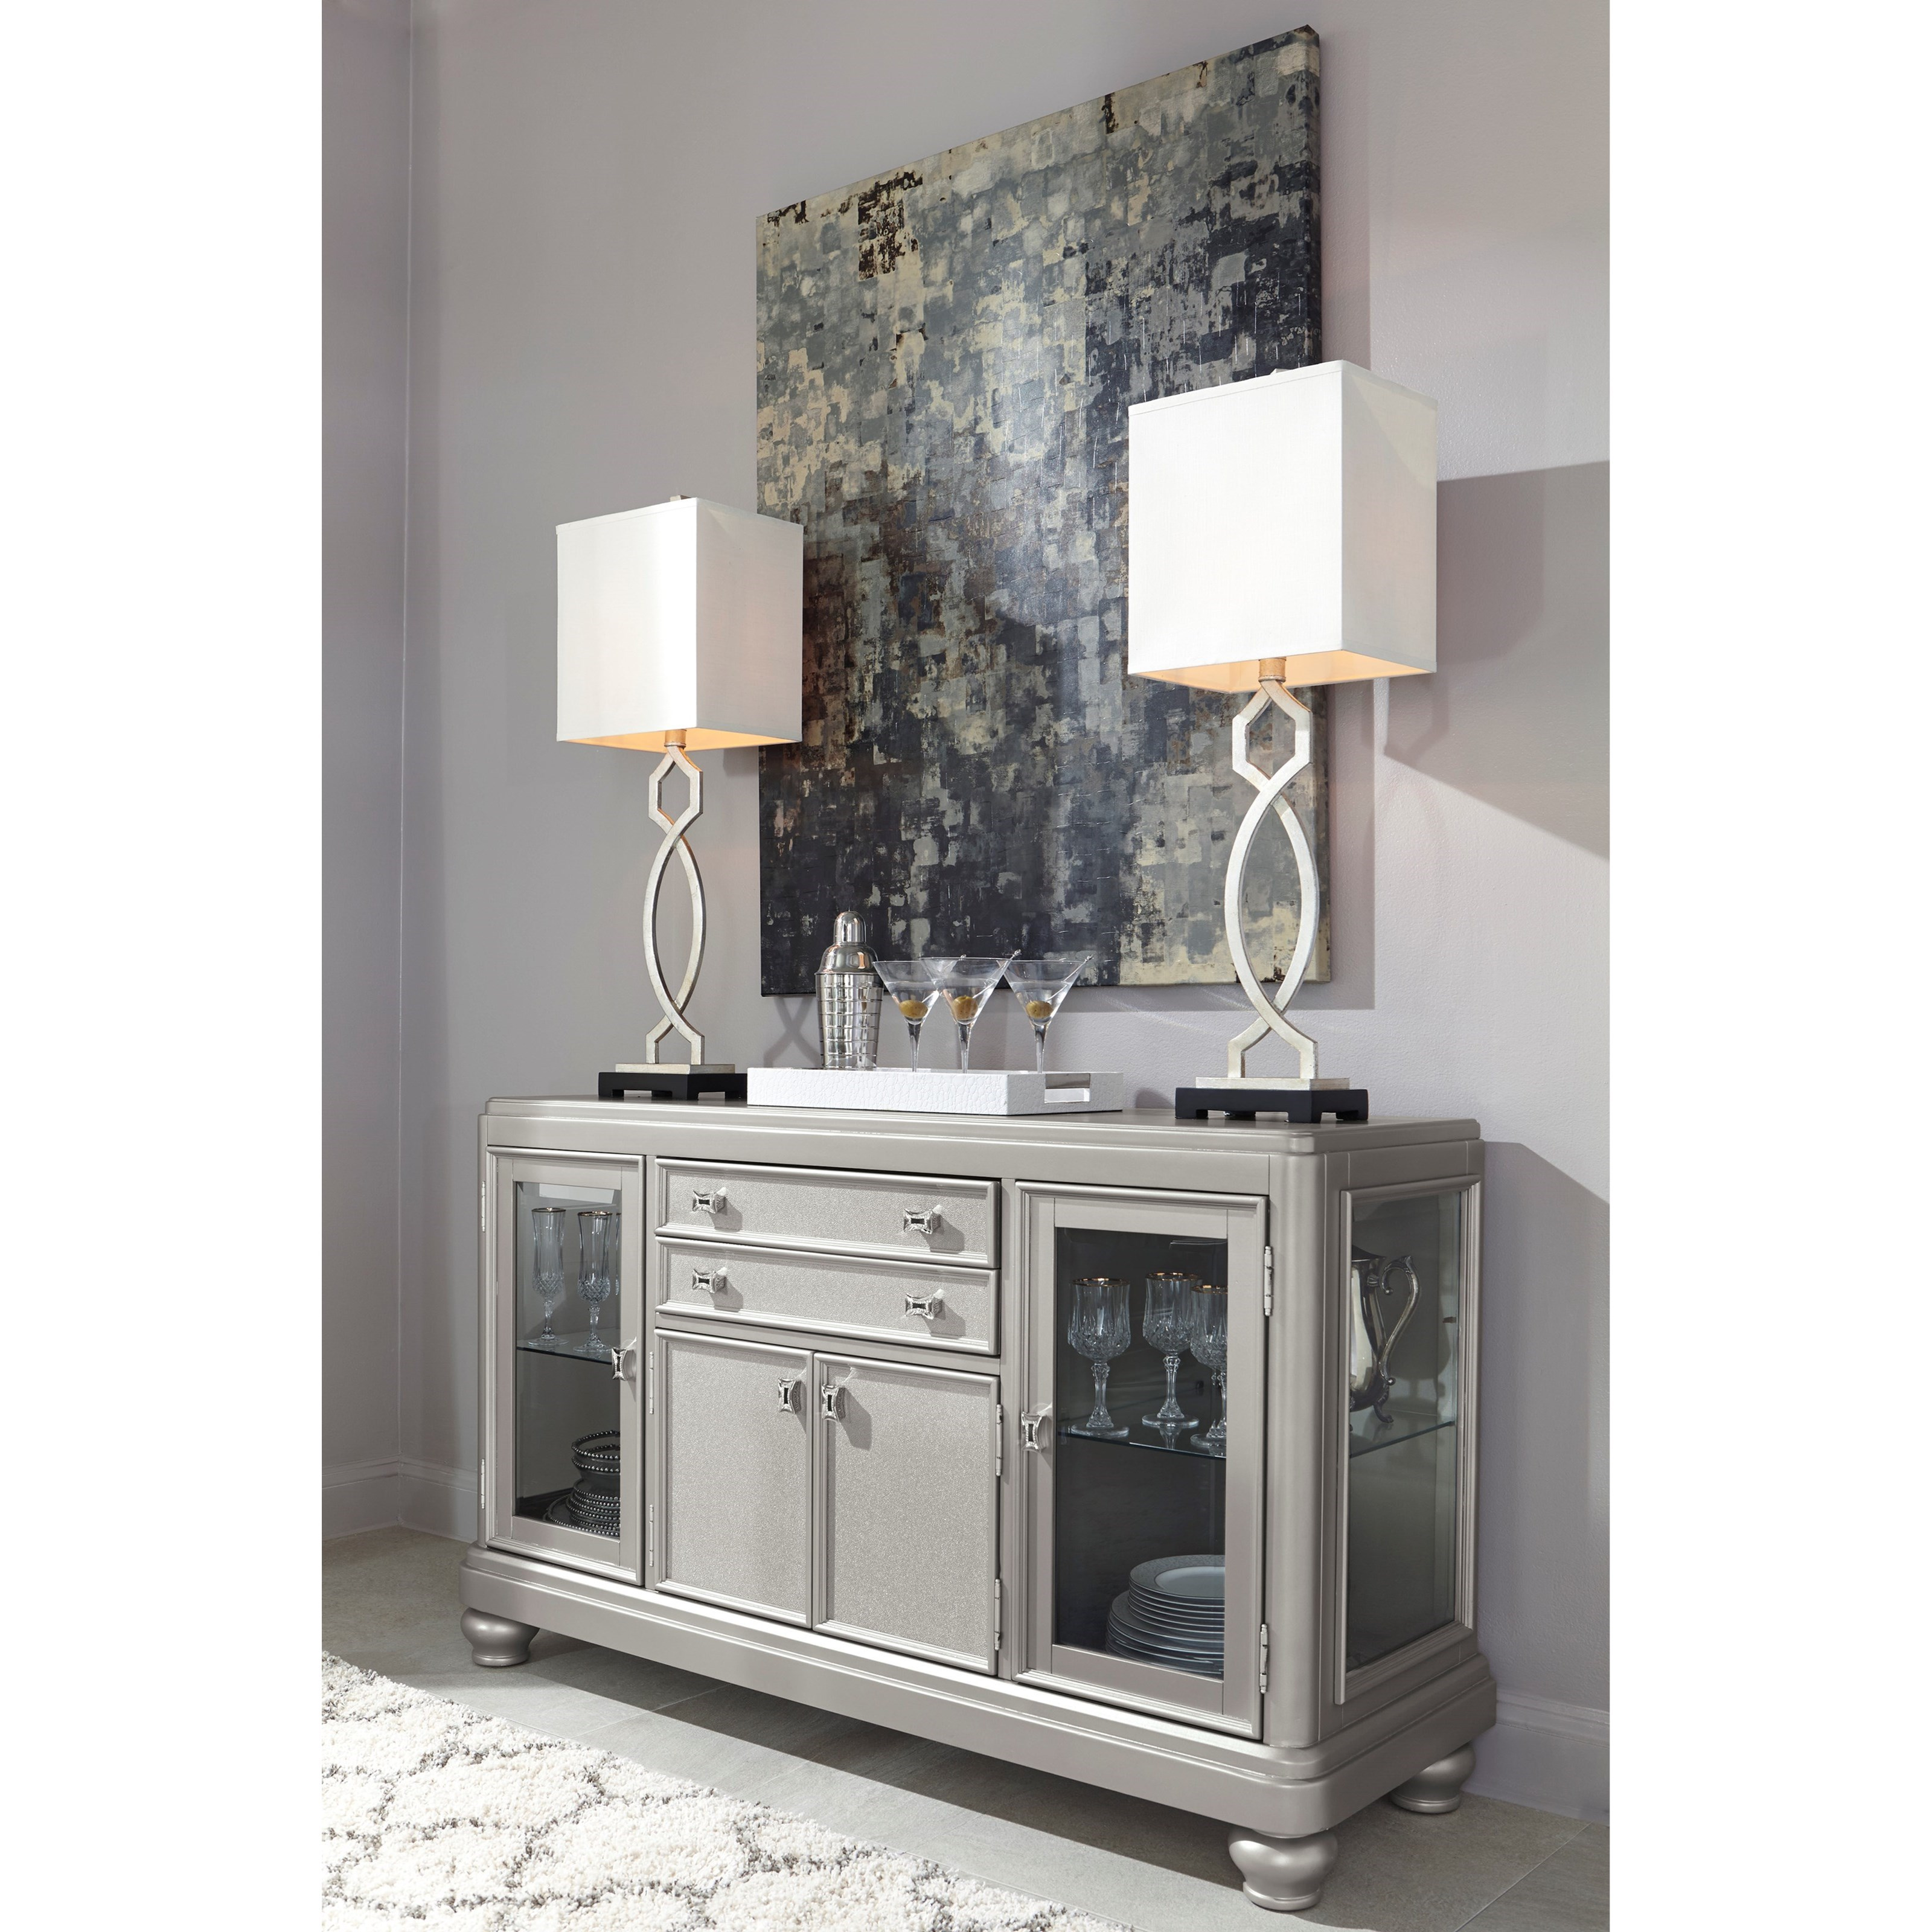 Dining Room Server With Glass Doors Silver Finish By Signature Design B